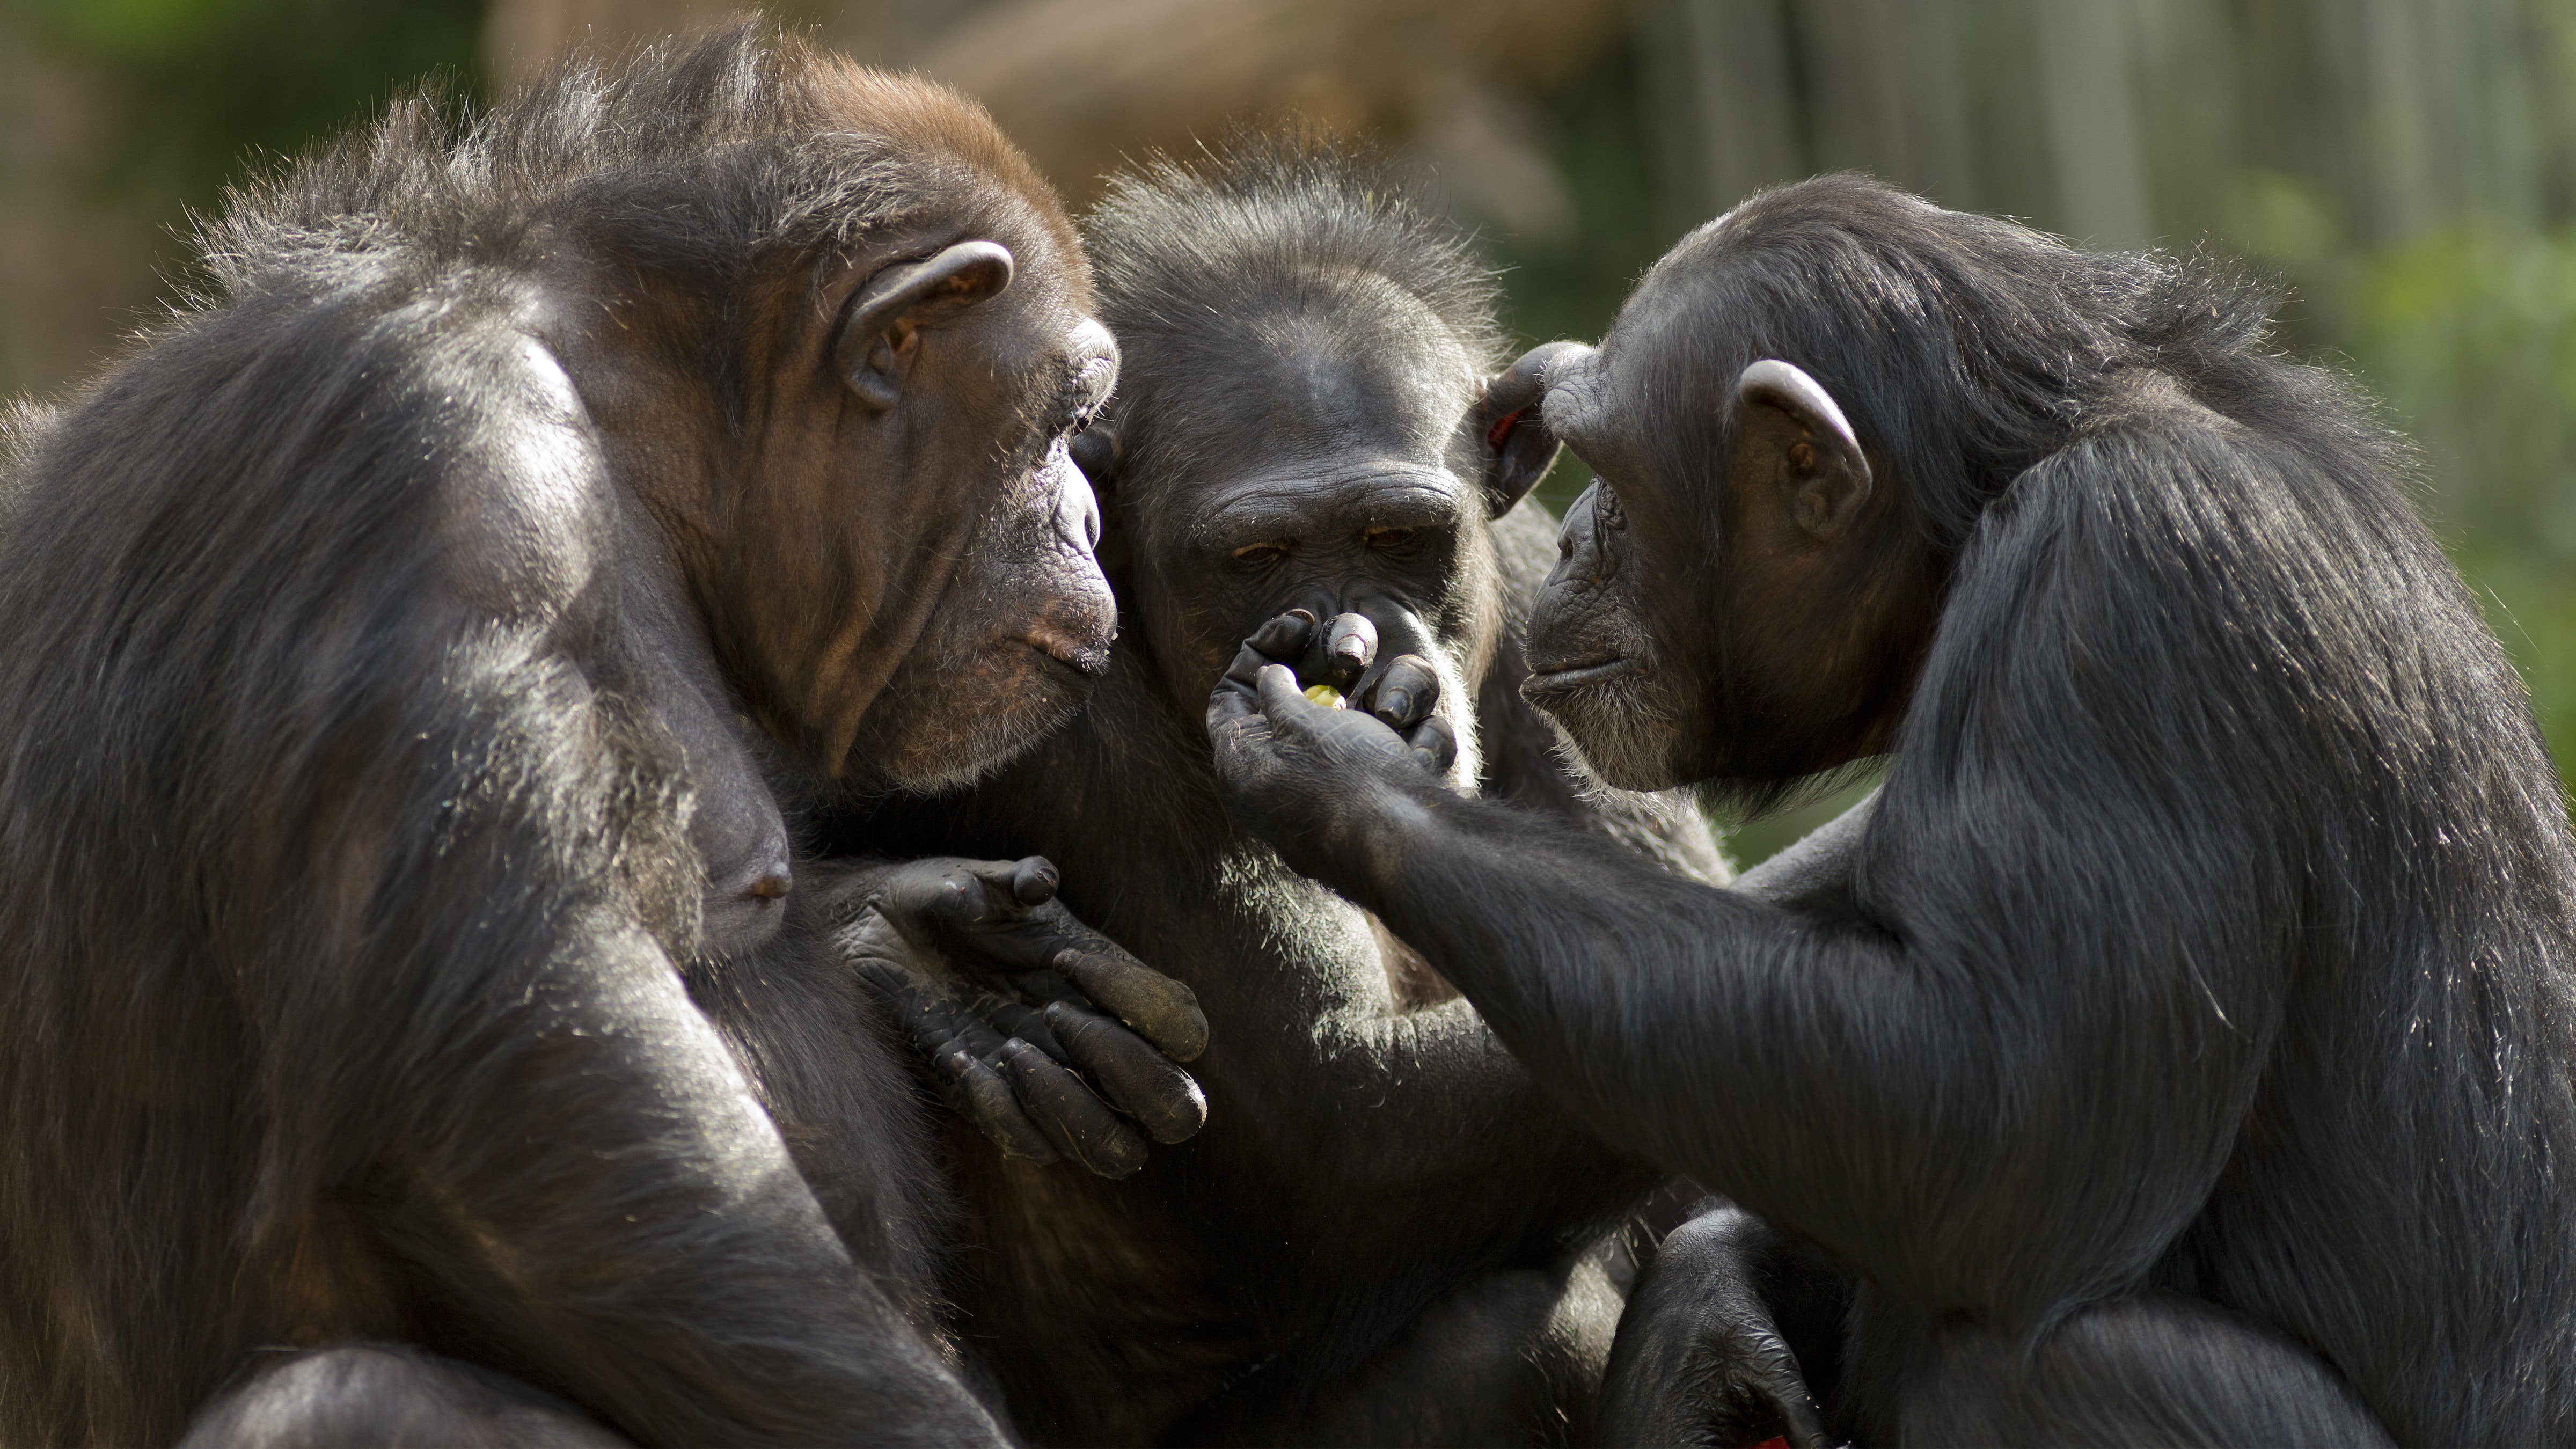 Why apes can't talk: our study suggests they've got the voice but not the brains